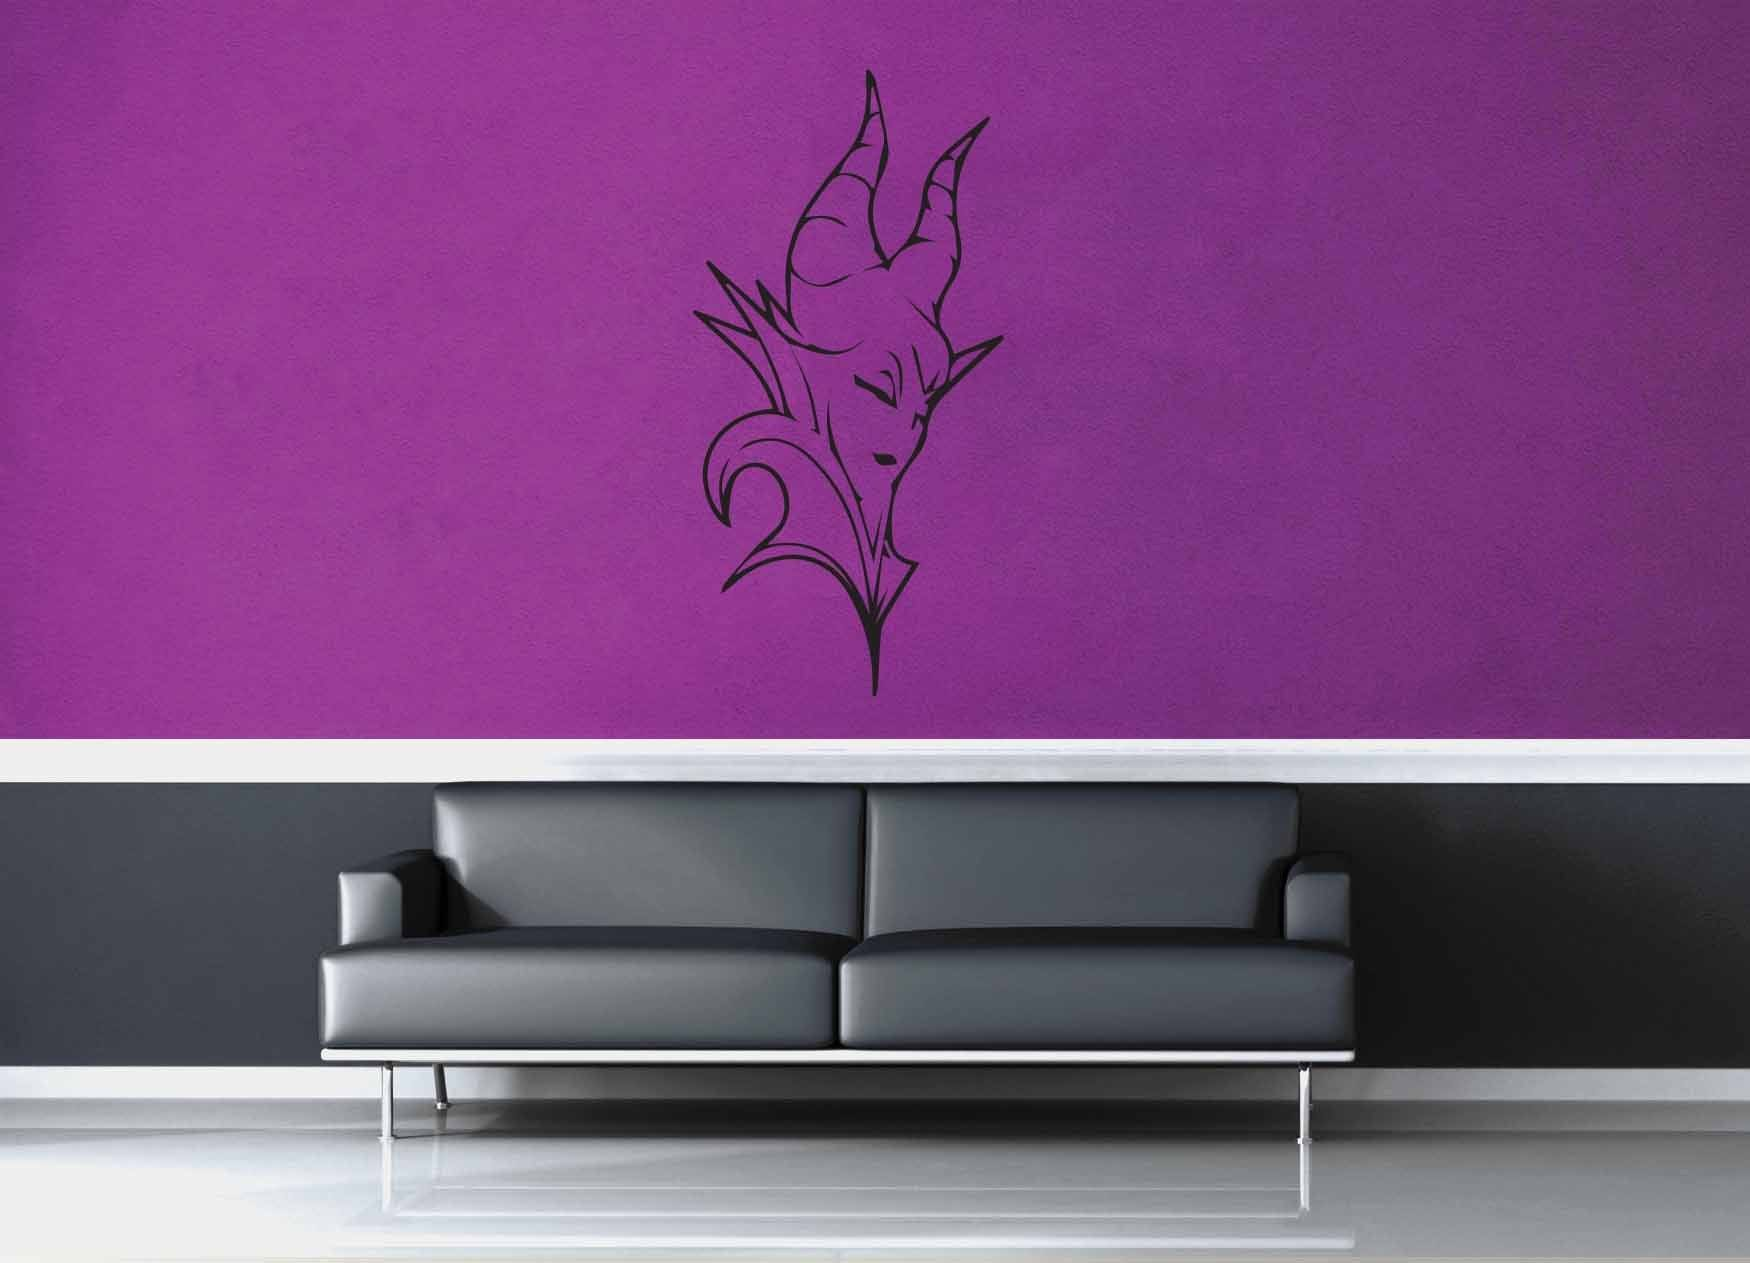 Maleficent - Wall Decal